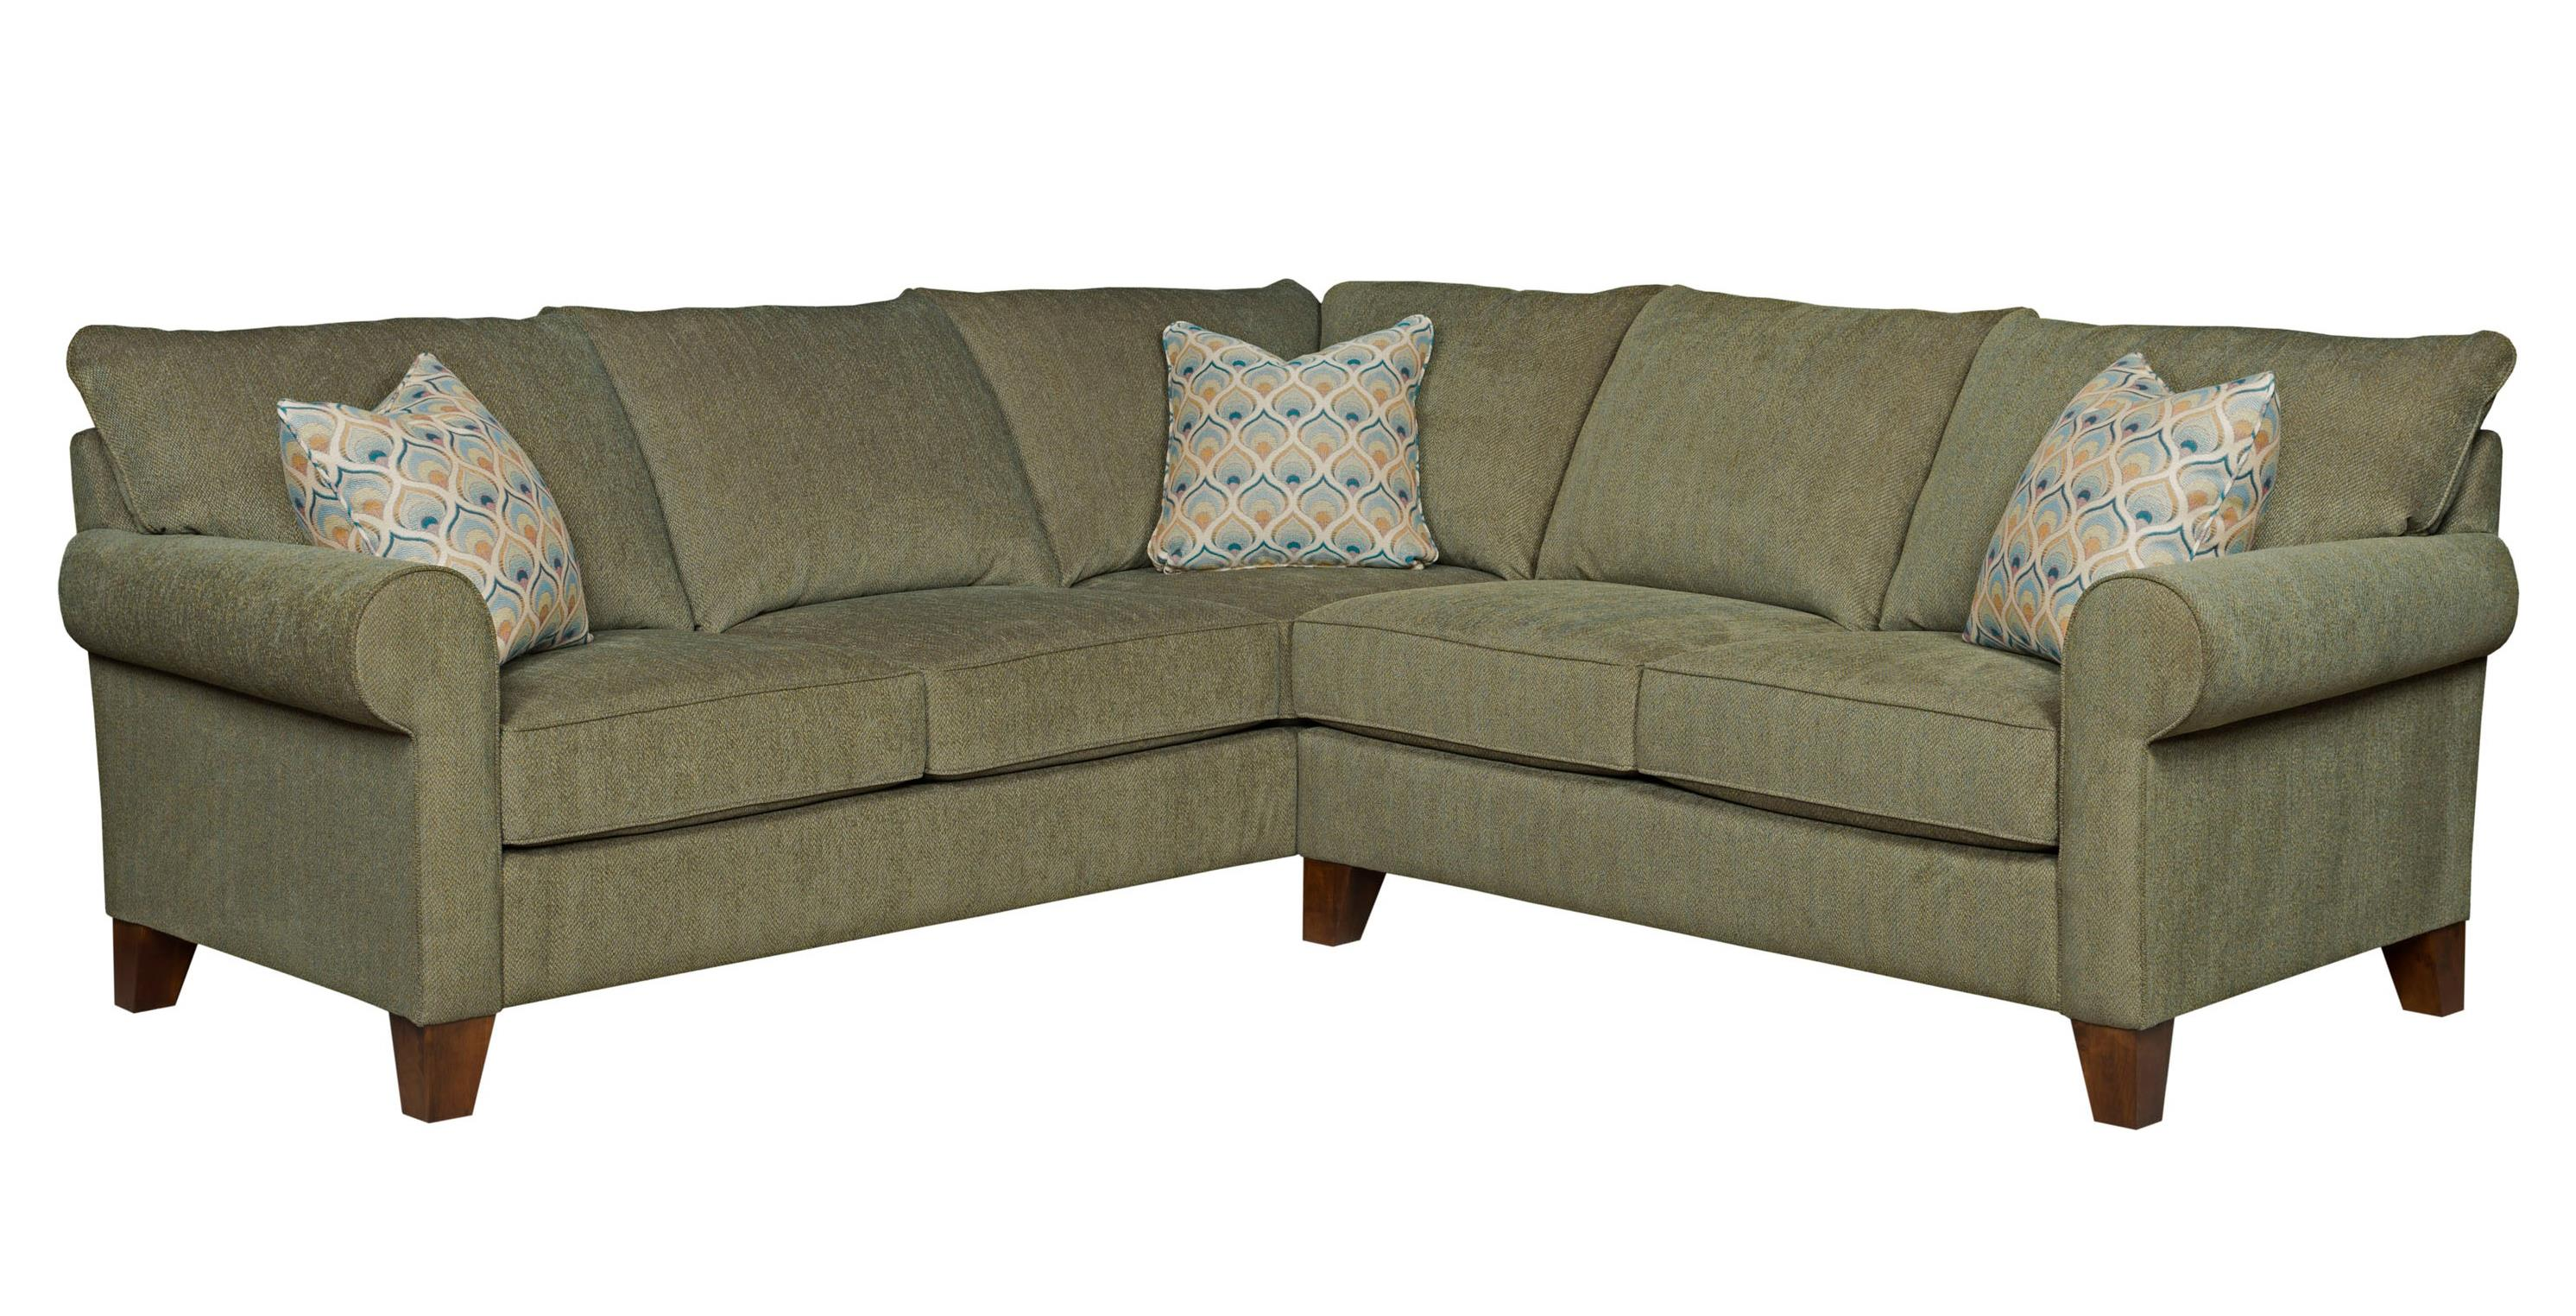 Broyhill Furniture Noda Transitional Sectional Sofa - Item Number: 4231-2+4-4075-27